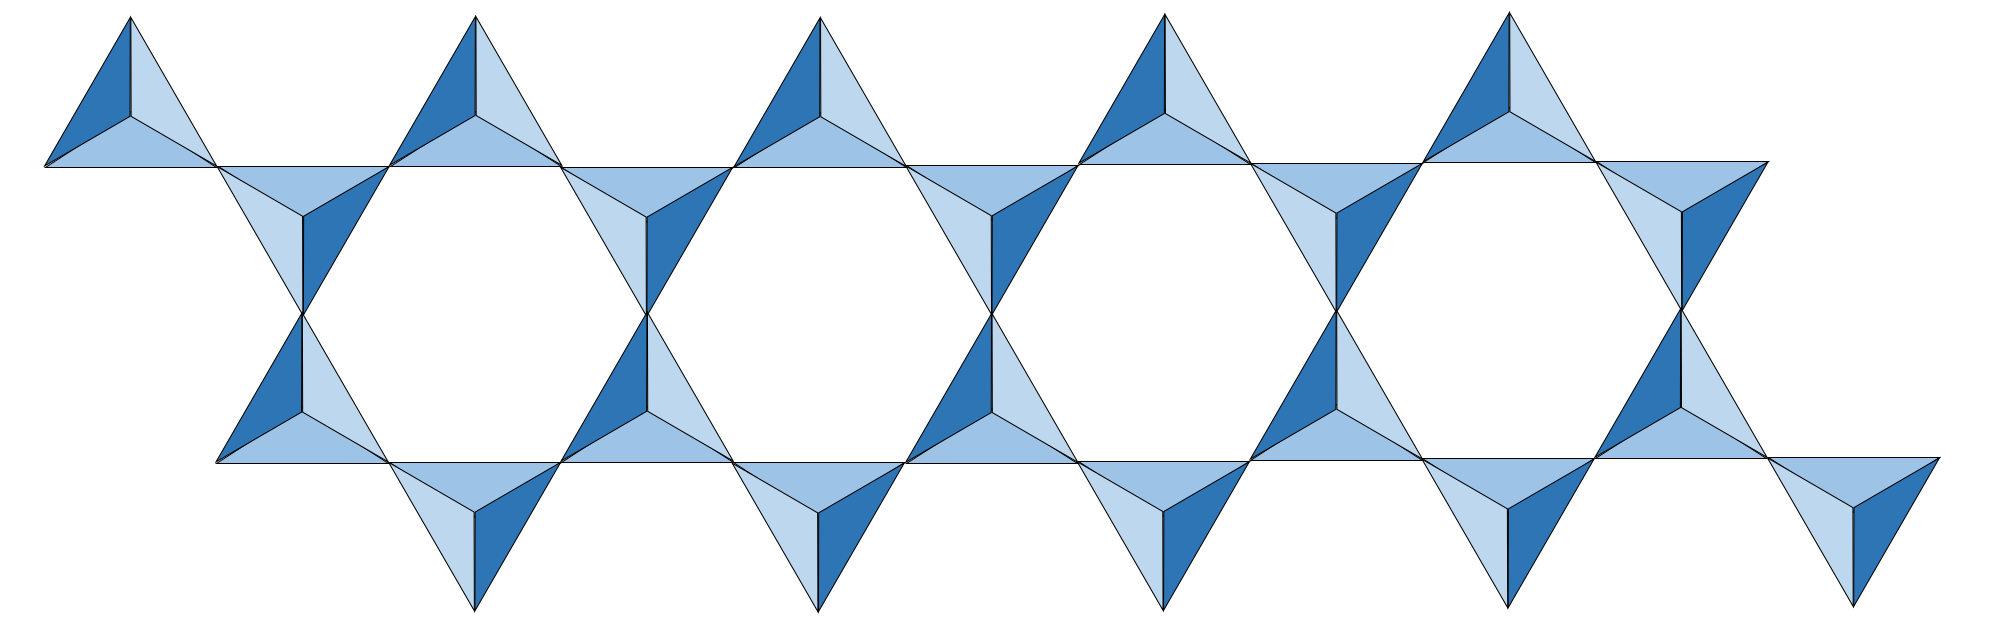 Illustration of a double chain of silicate tetrahedra.